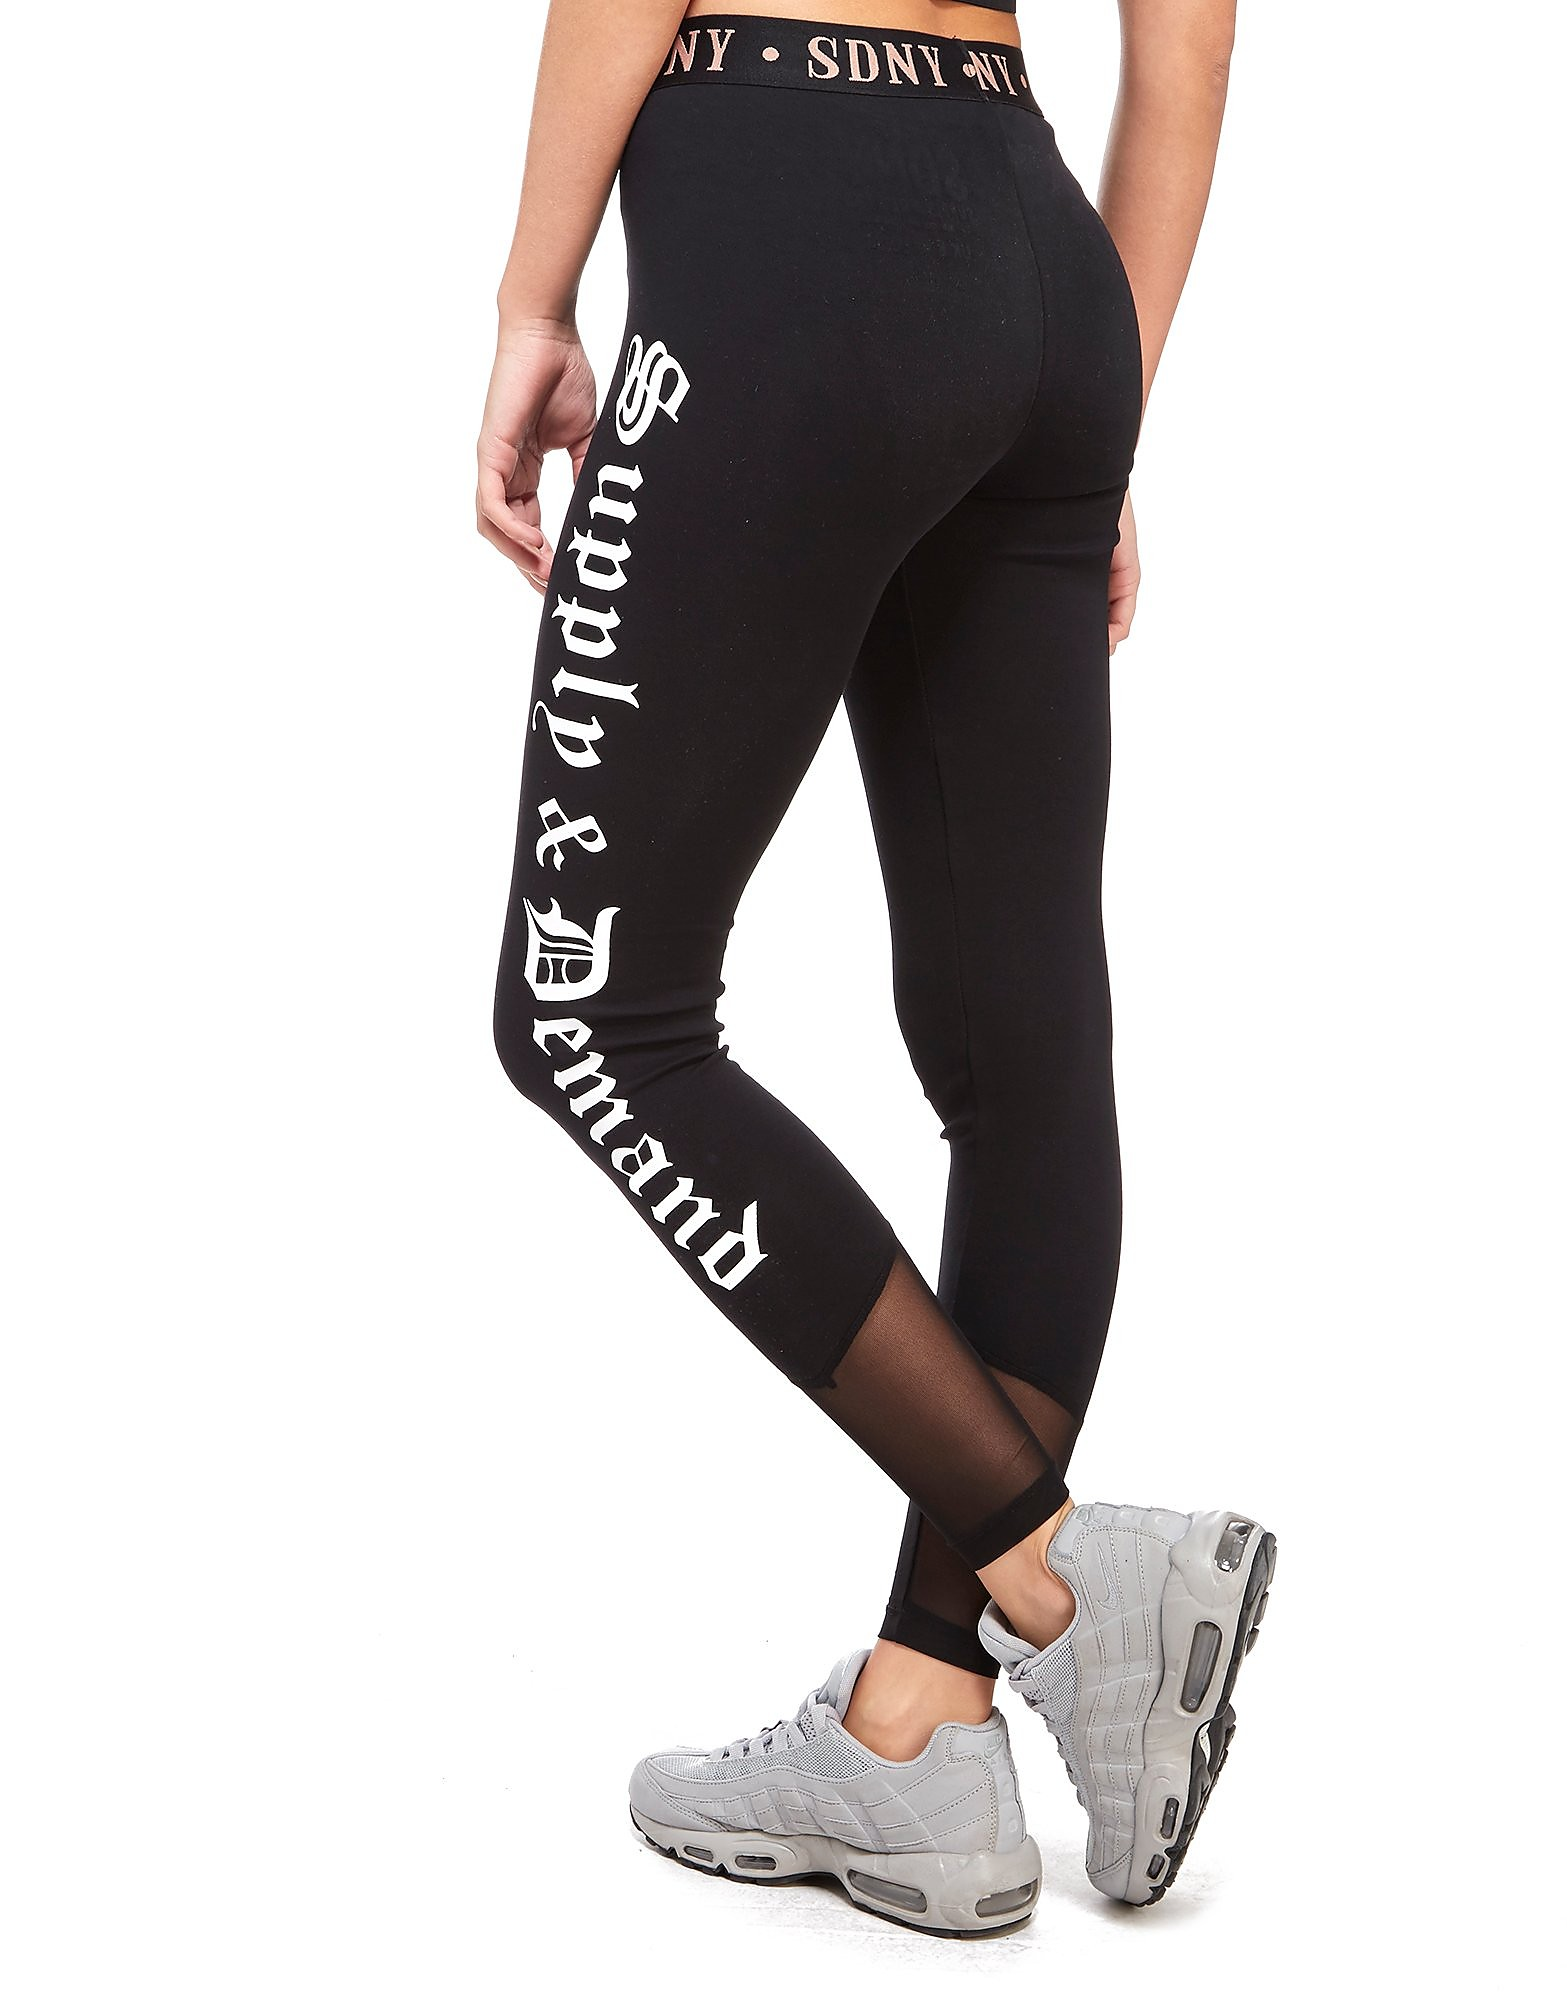 Supply & Demand Logo Leggings